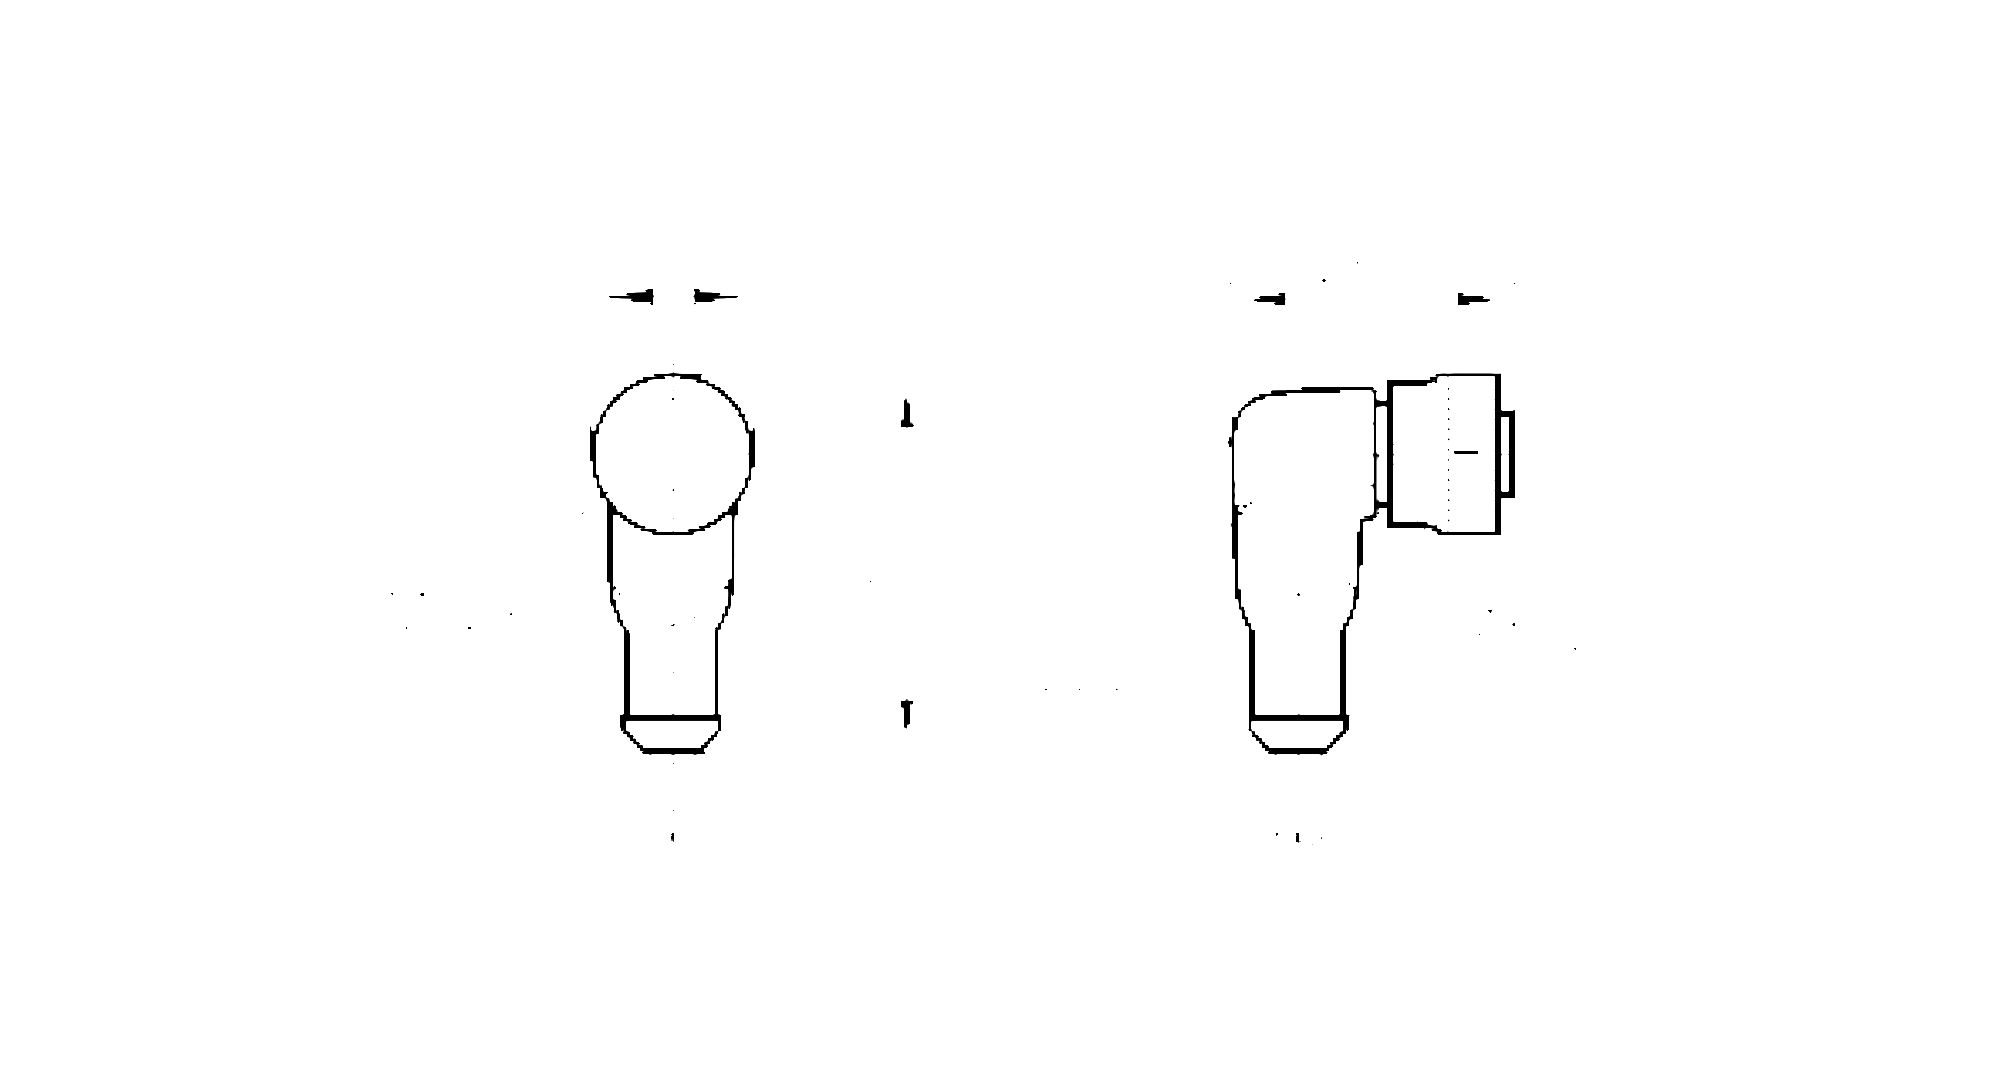 evc009 - connecting cable with socket